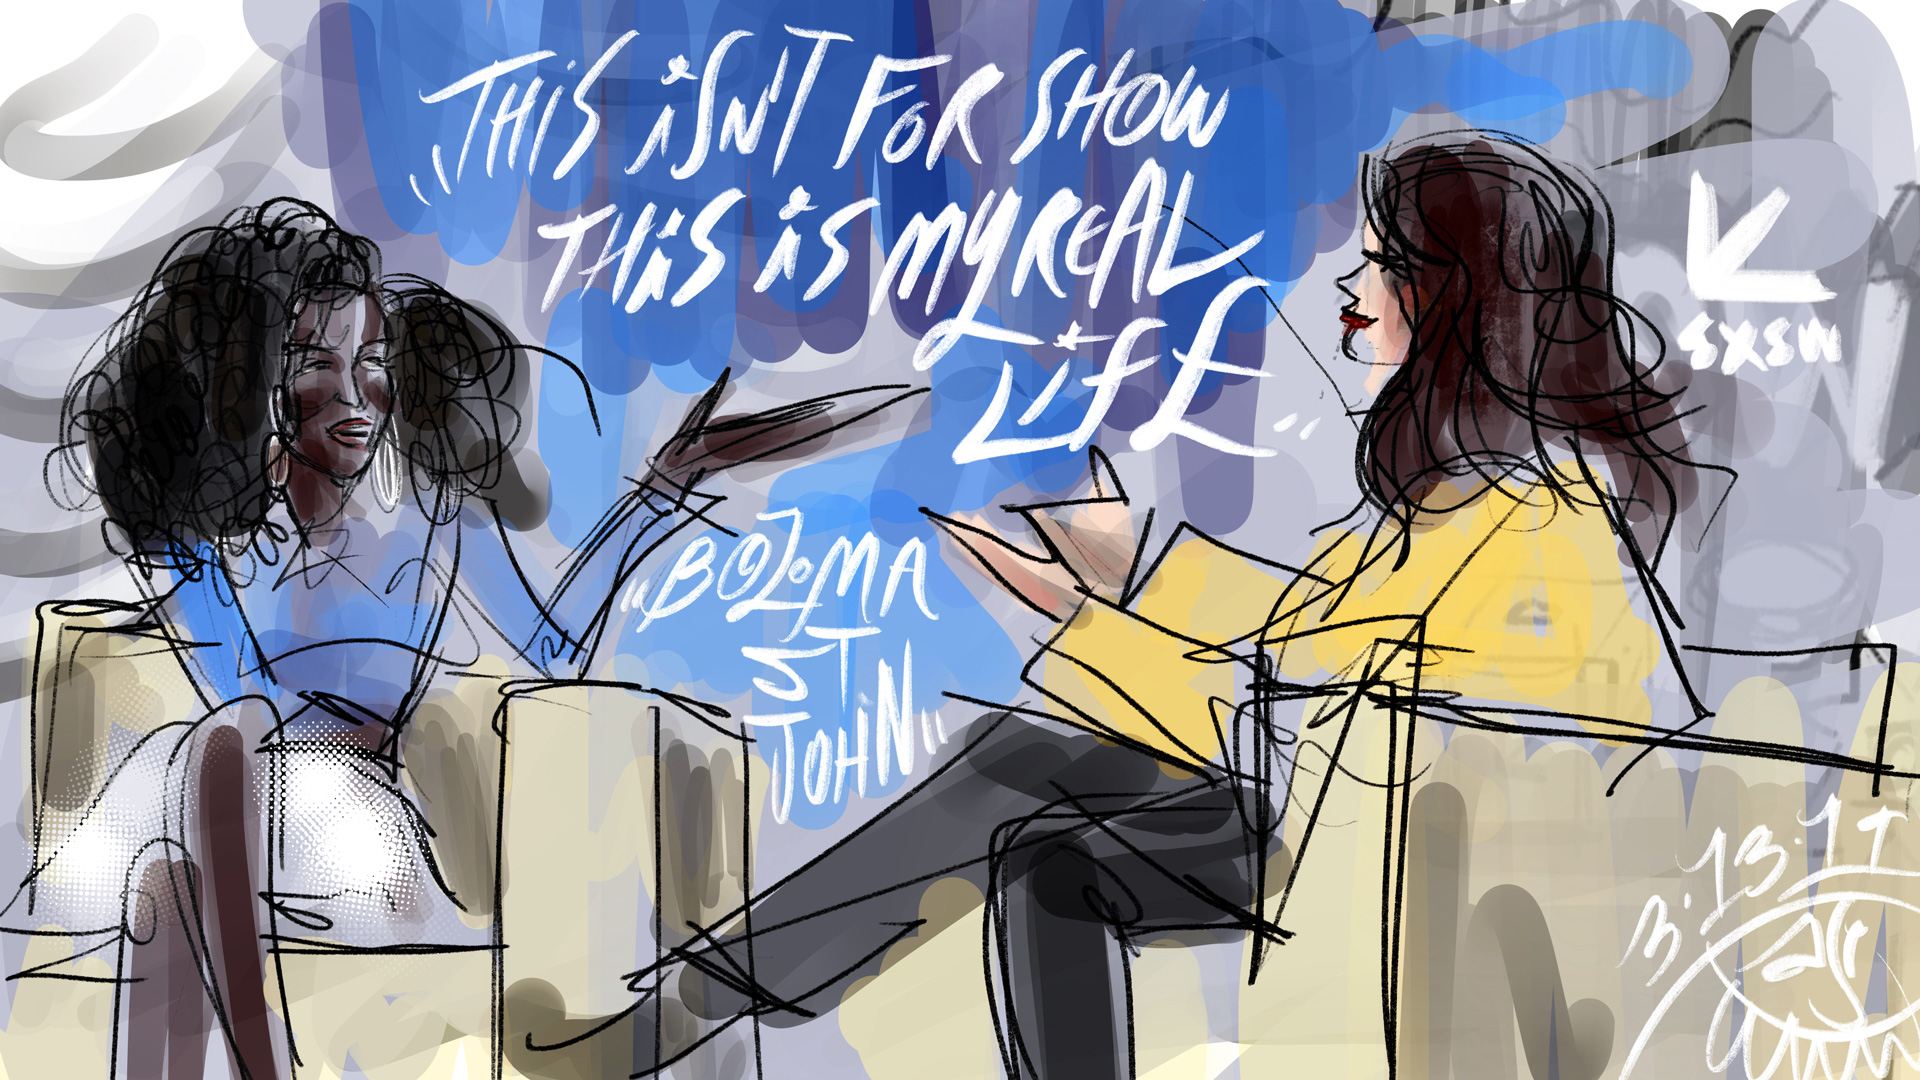 A really great conversation between  @badassboz  and  @ashleygraham  3.13.19  @sxsw . It struck a real chord with a creative working in the world of commercial media, the way perception can overwrite results and the struggle of managing that perception while being the true self that brought you to where you are.